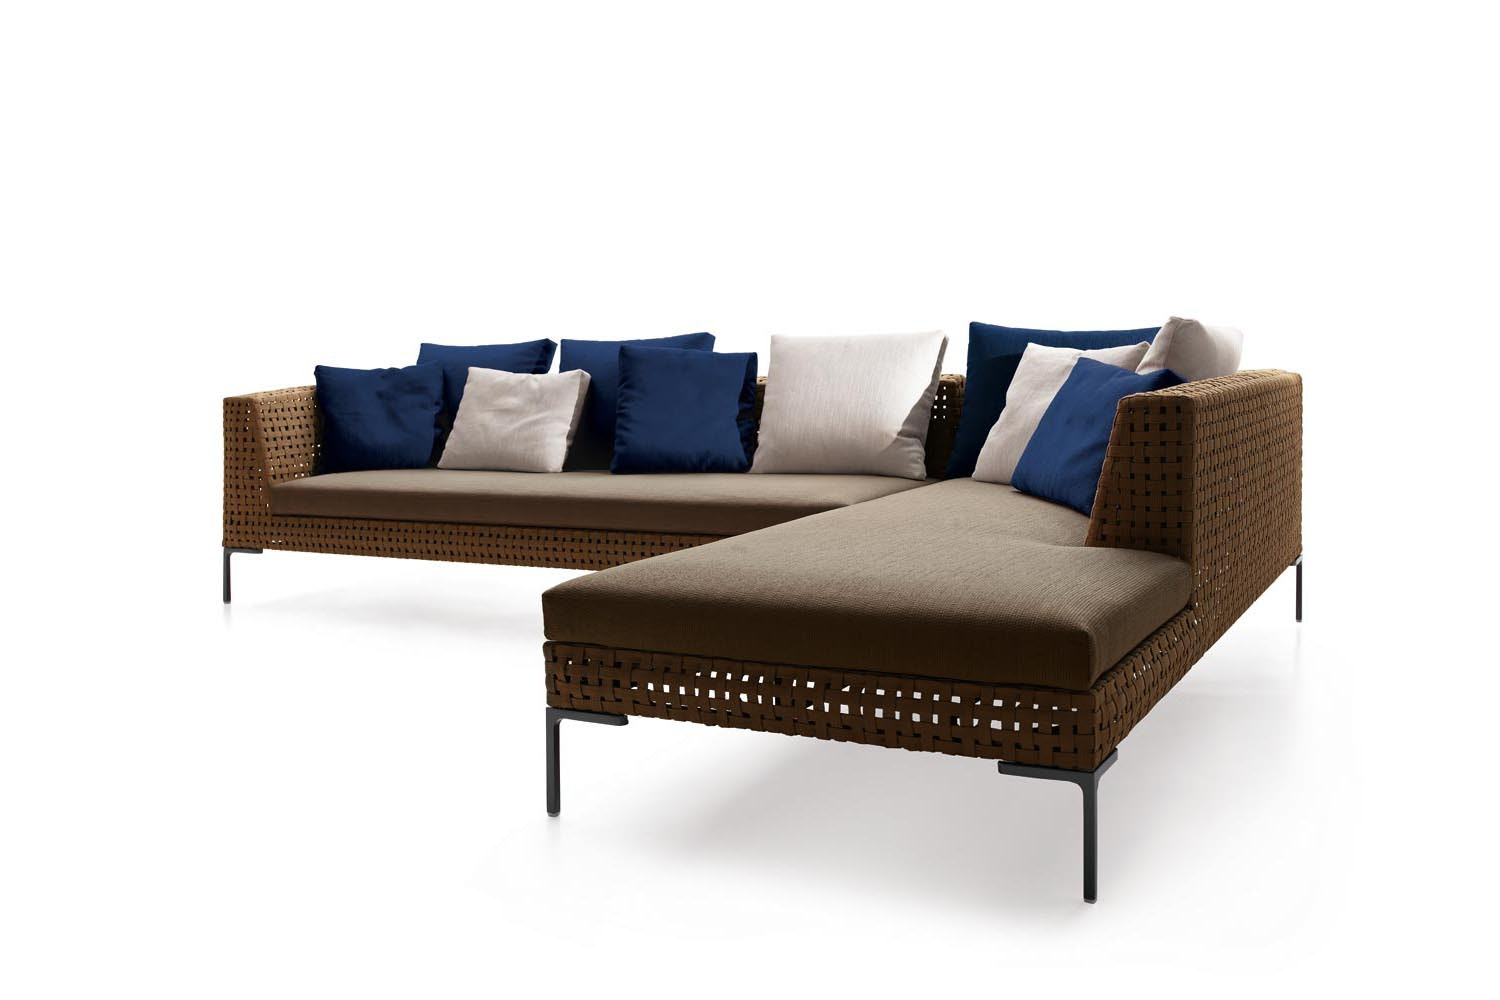 Charles Outdoor Sofa by Antonio Citterio for B&B Italia